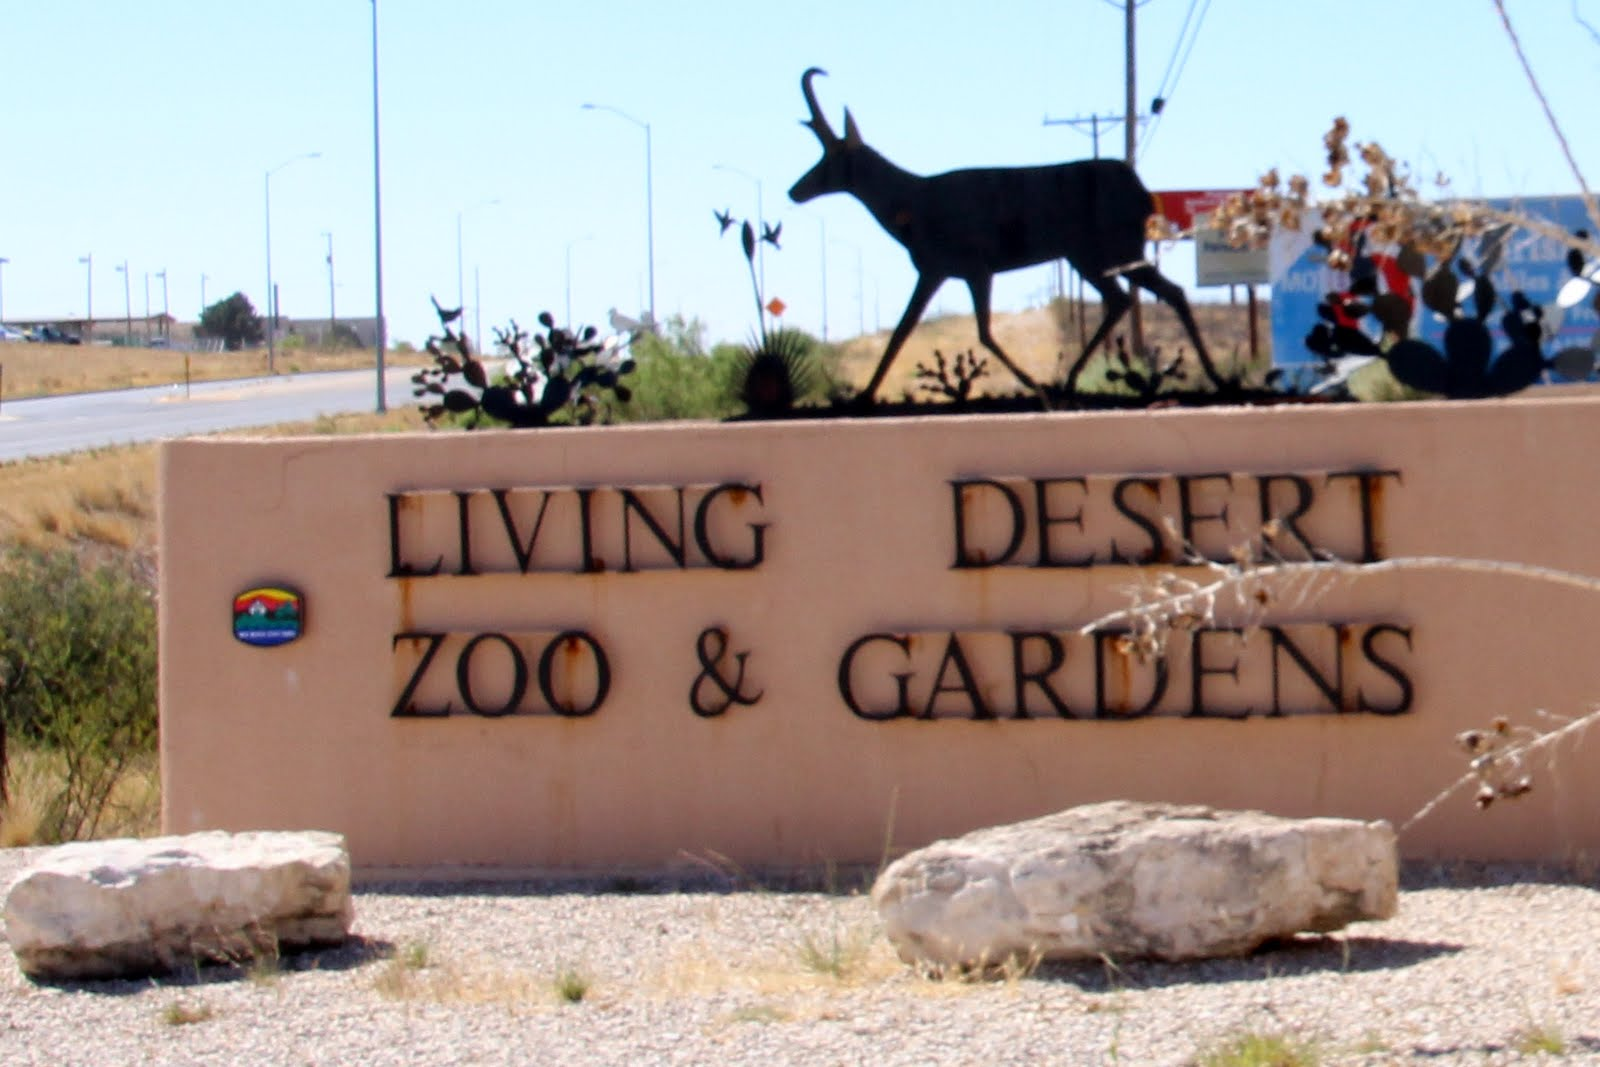 operation explorations living desert zoo and gardens state park